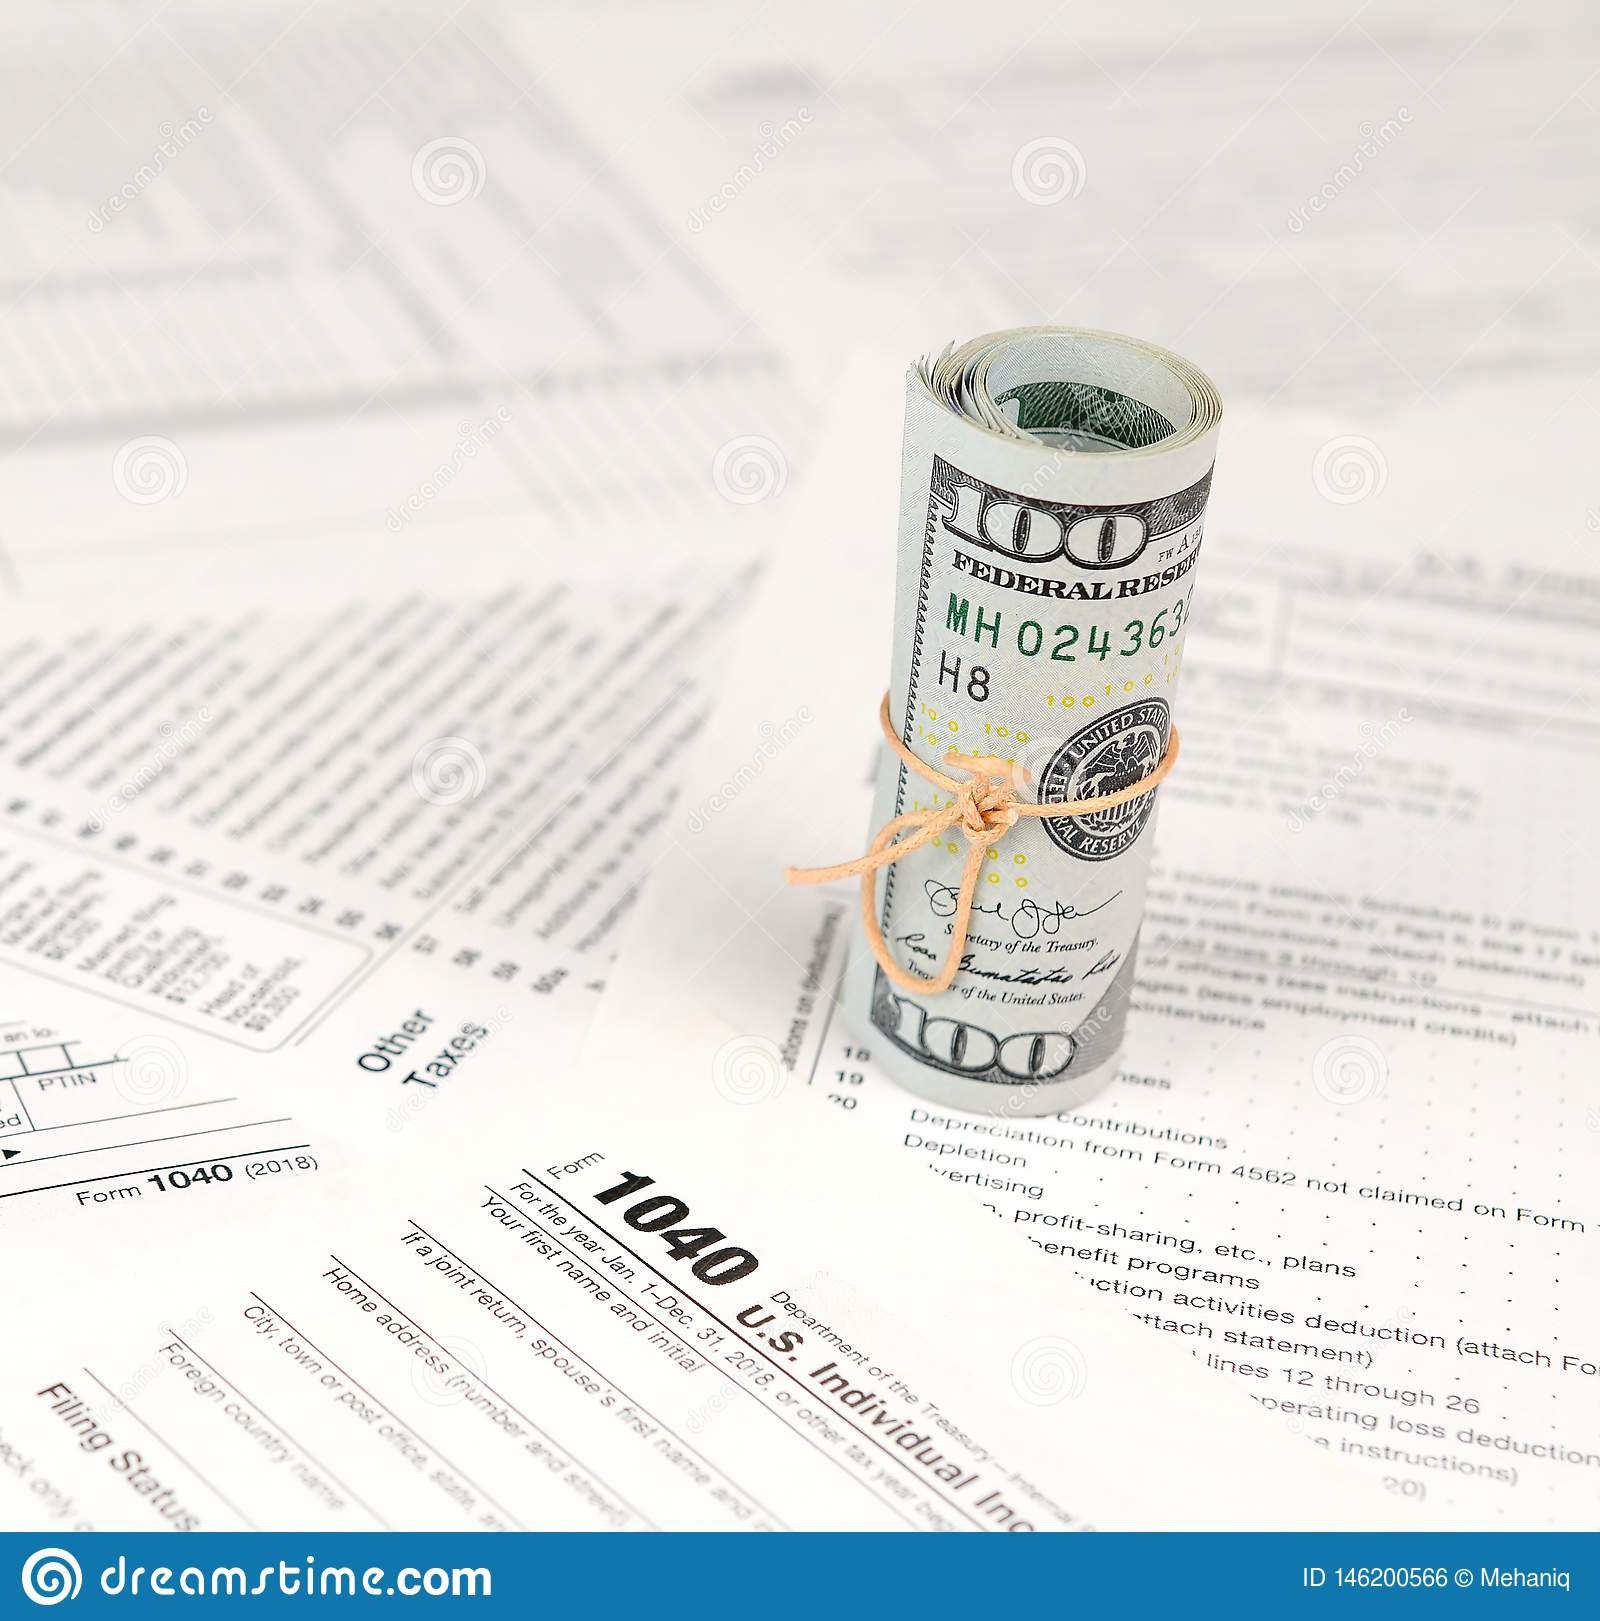 1040 Individual Income Tax Return Form With Roll Of American Dollar Banknotes